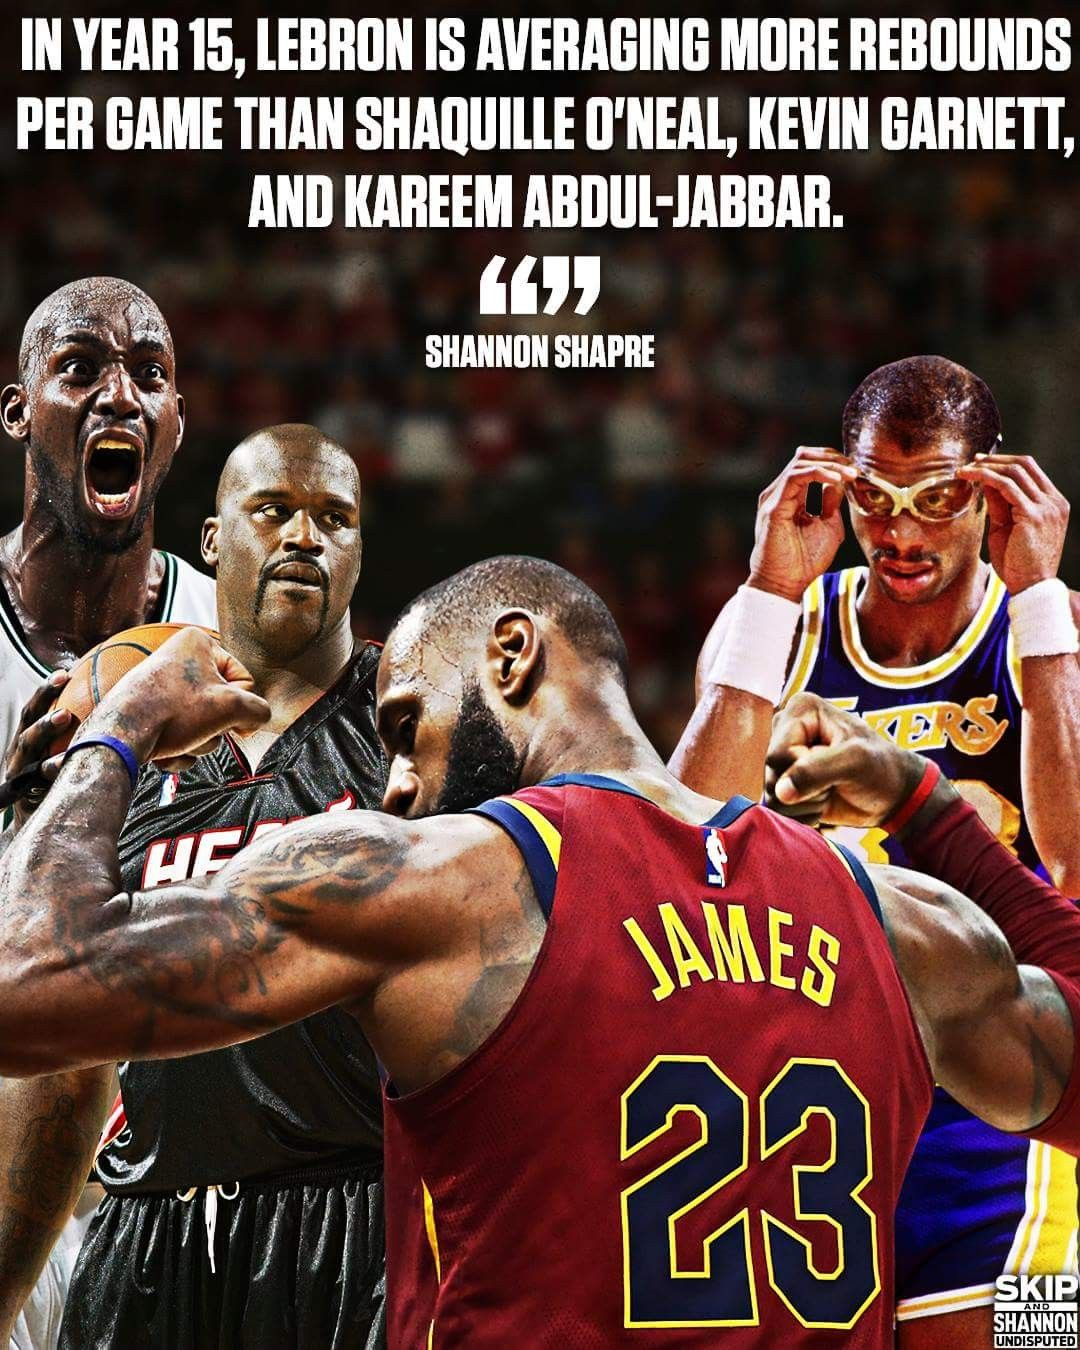 pin by jim keneagy on lebron james | pinterest | lebron james, nba